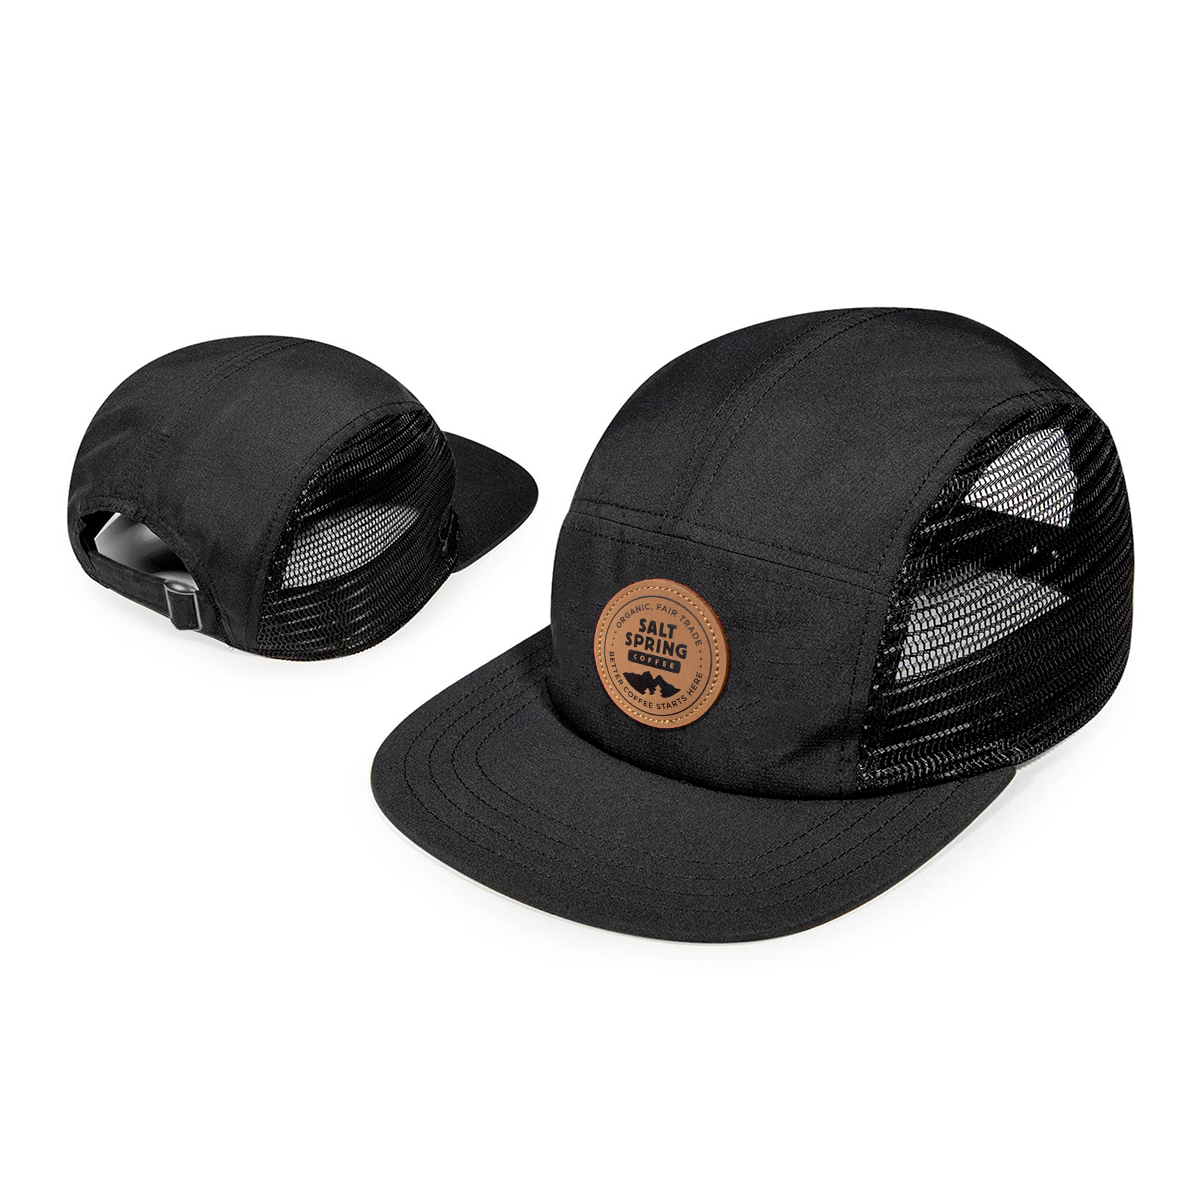 Runners Cap - Cotton Black